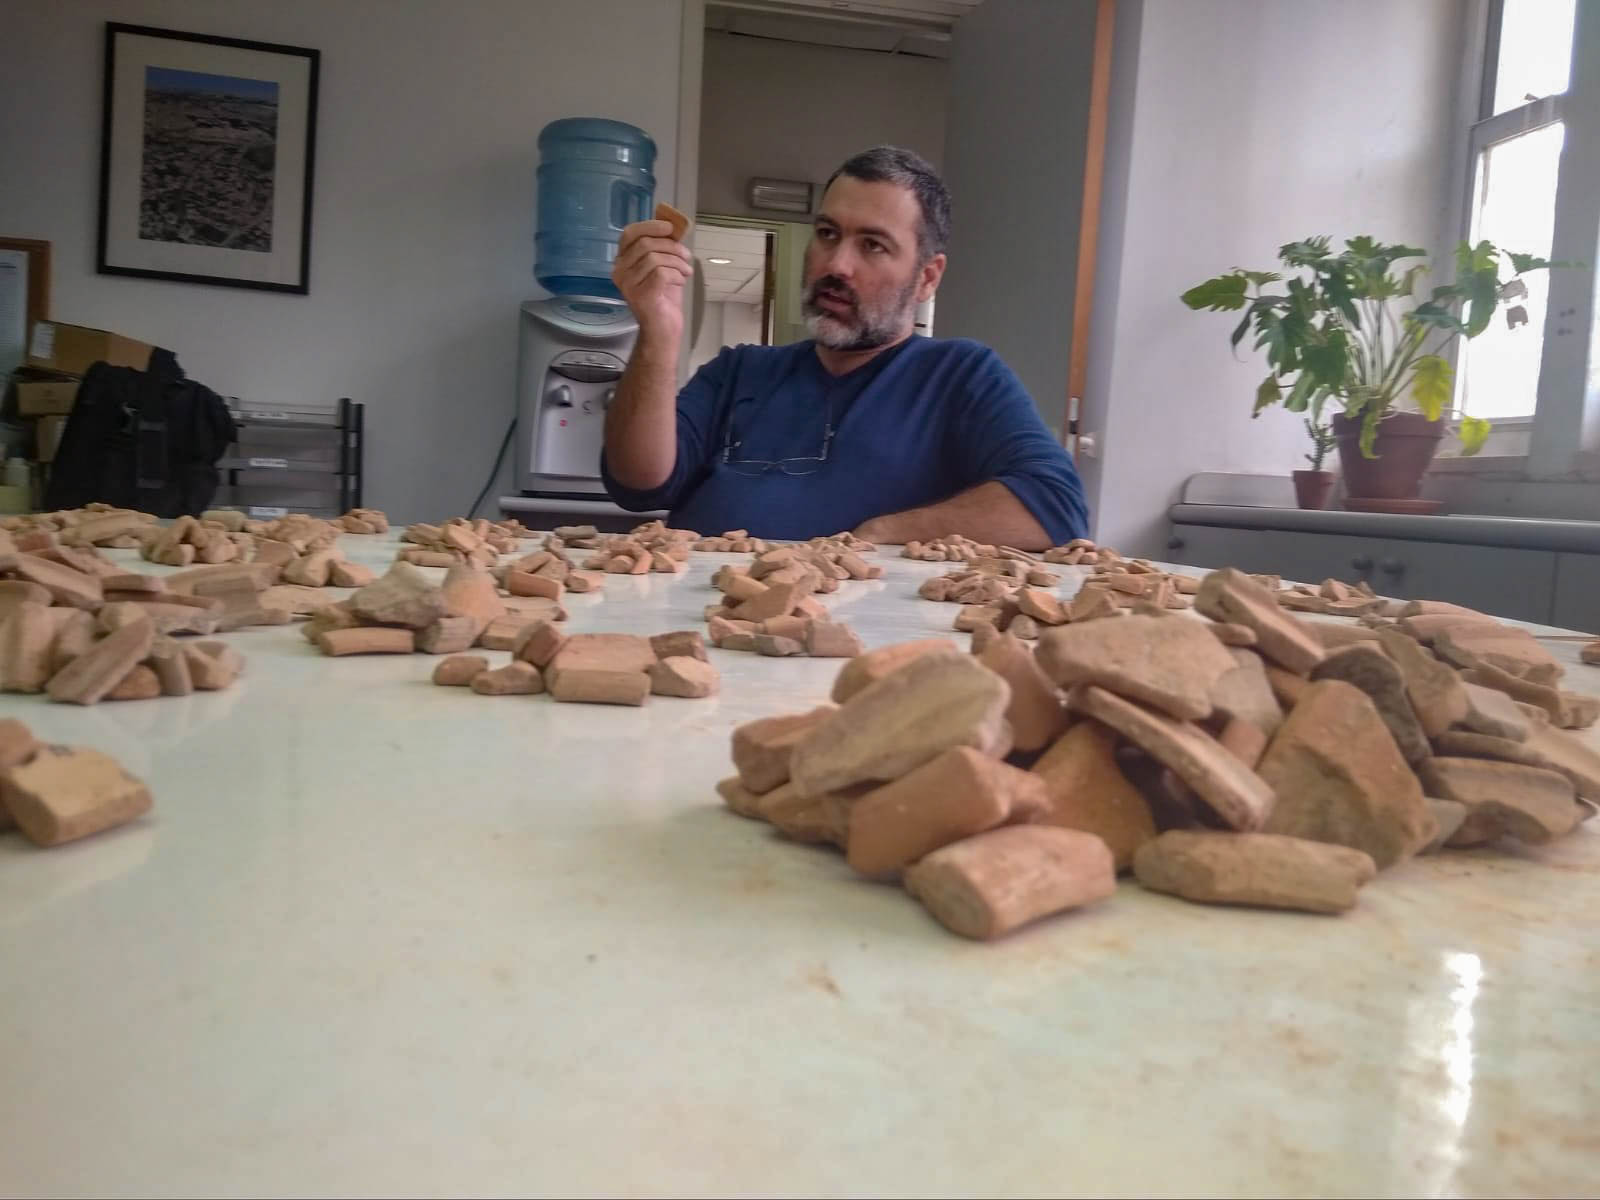 Researcher inspecting a pottery shard in front of a table containing heaps of pottery shards.